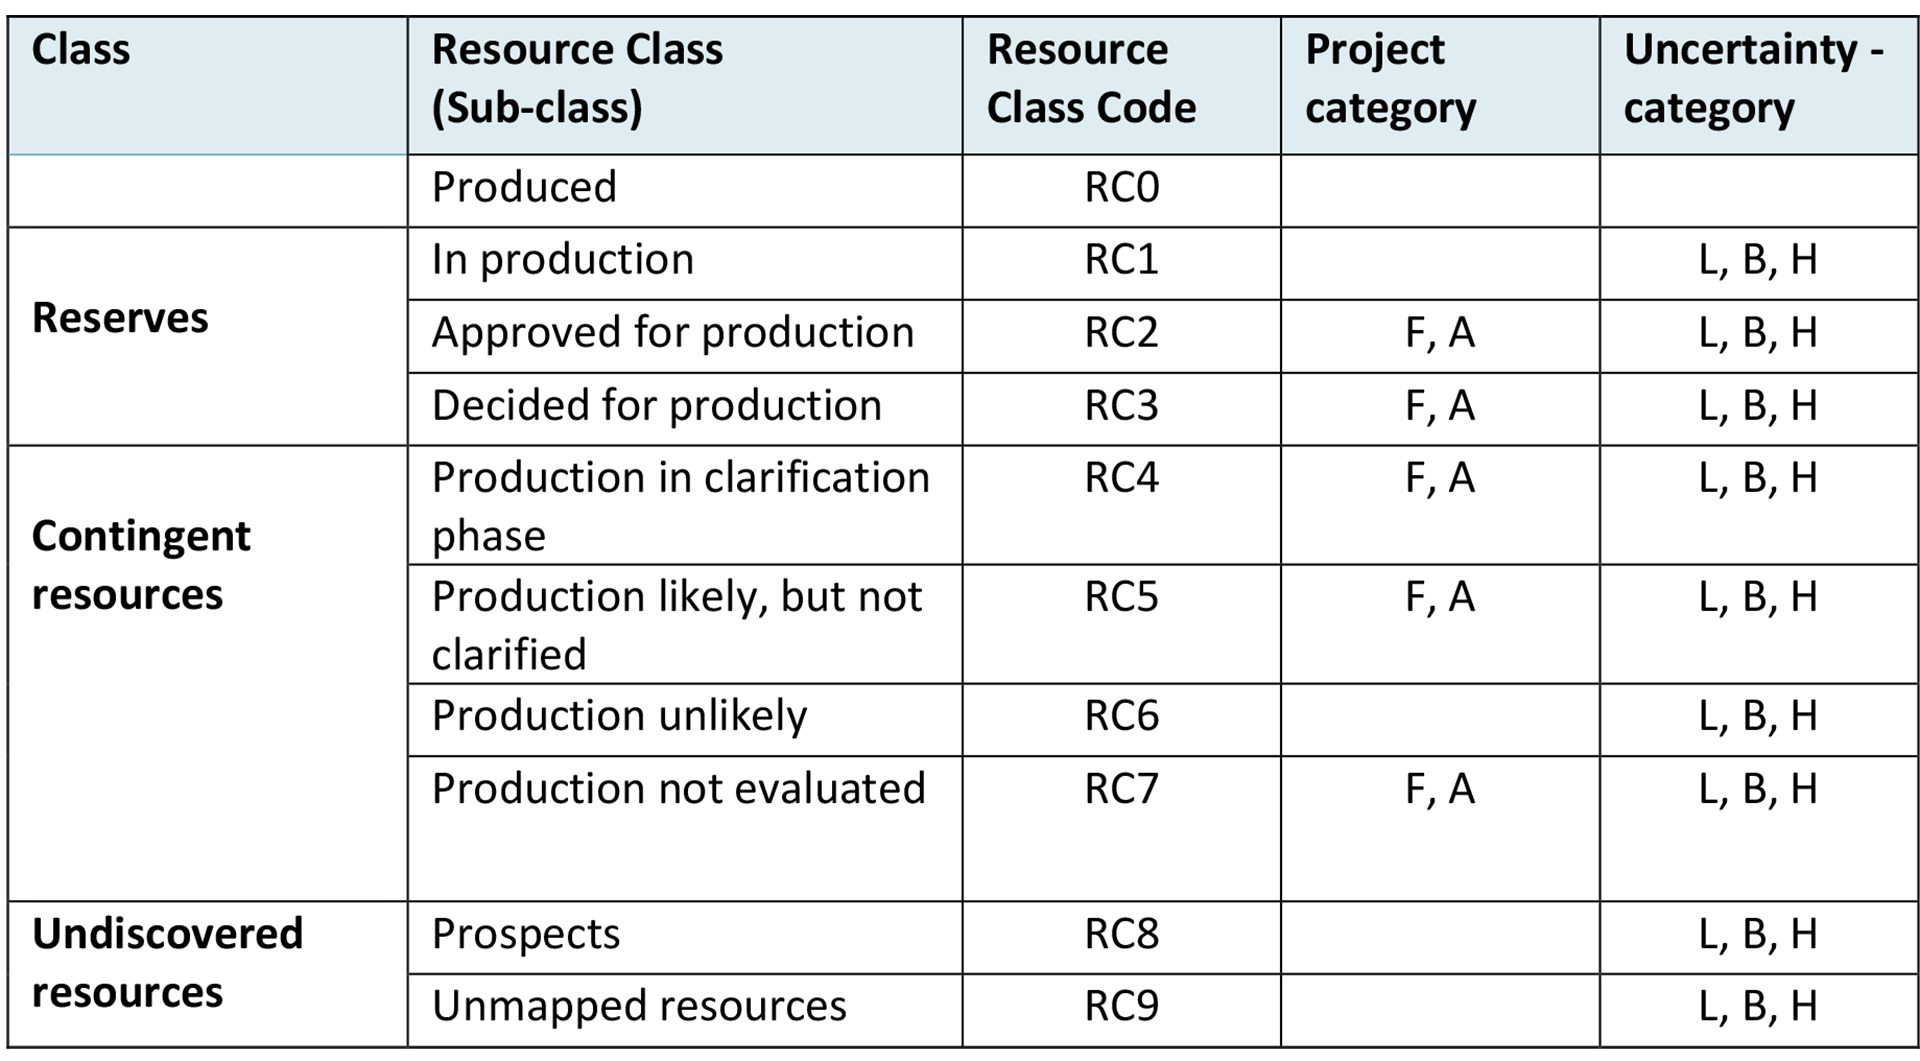 Table 3‑1 Overview of classes, resource classes (sub-classes), project categories and uncertainty categories